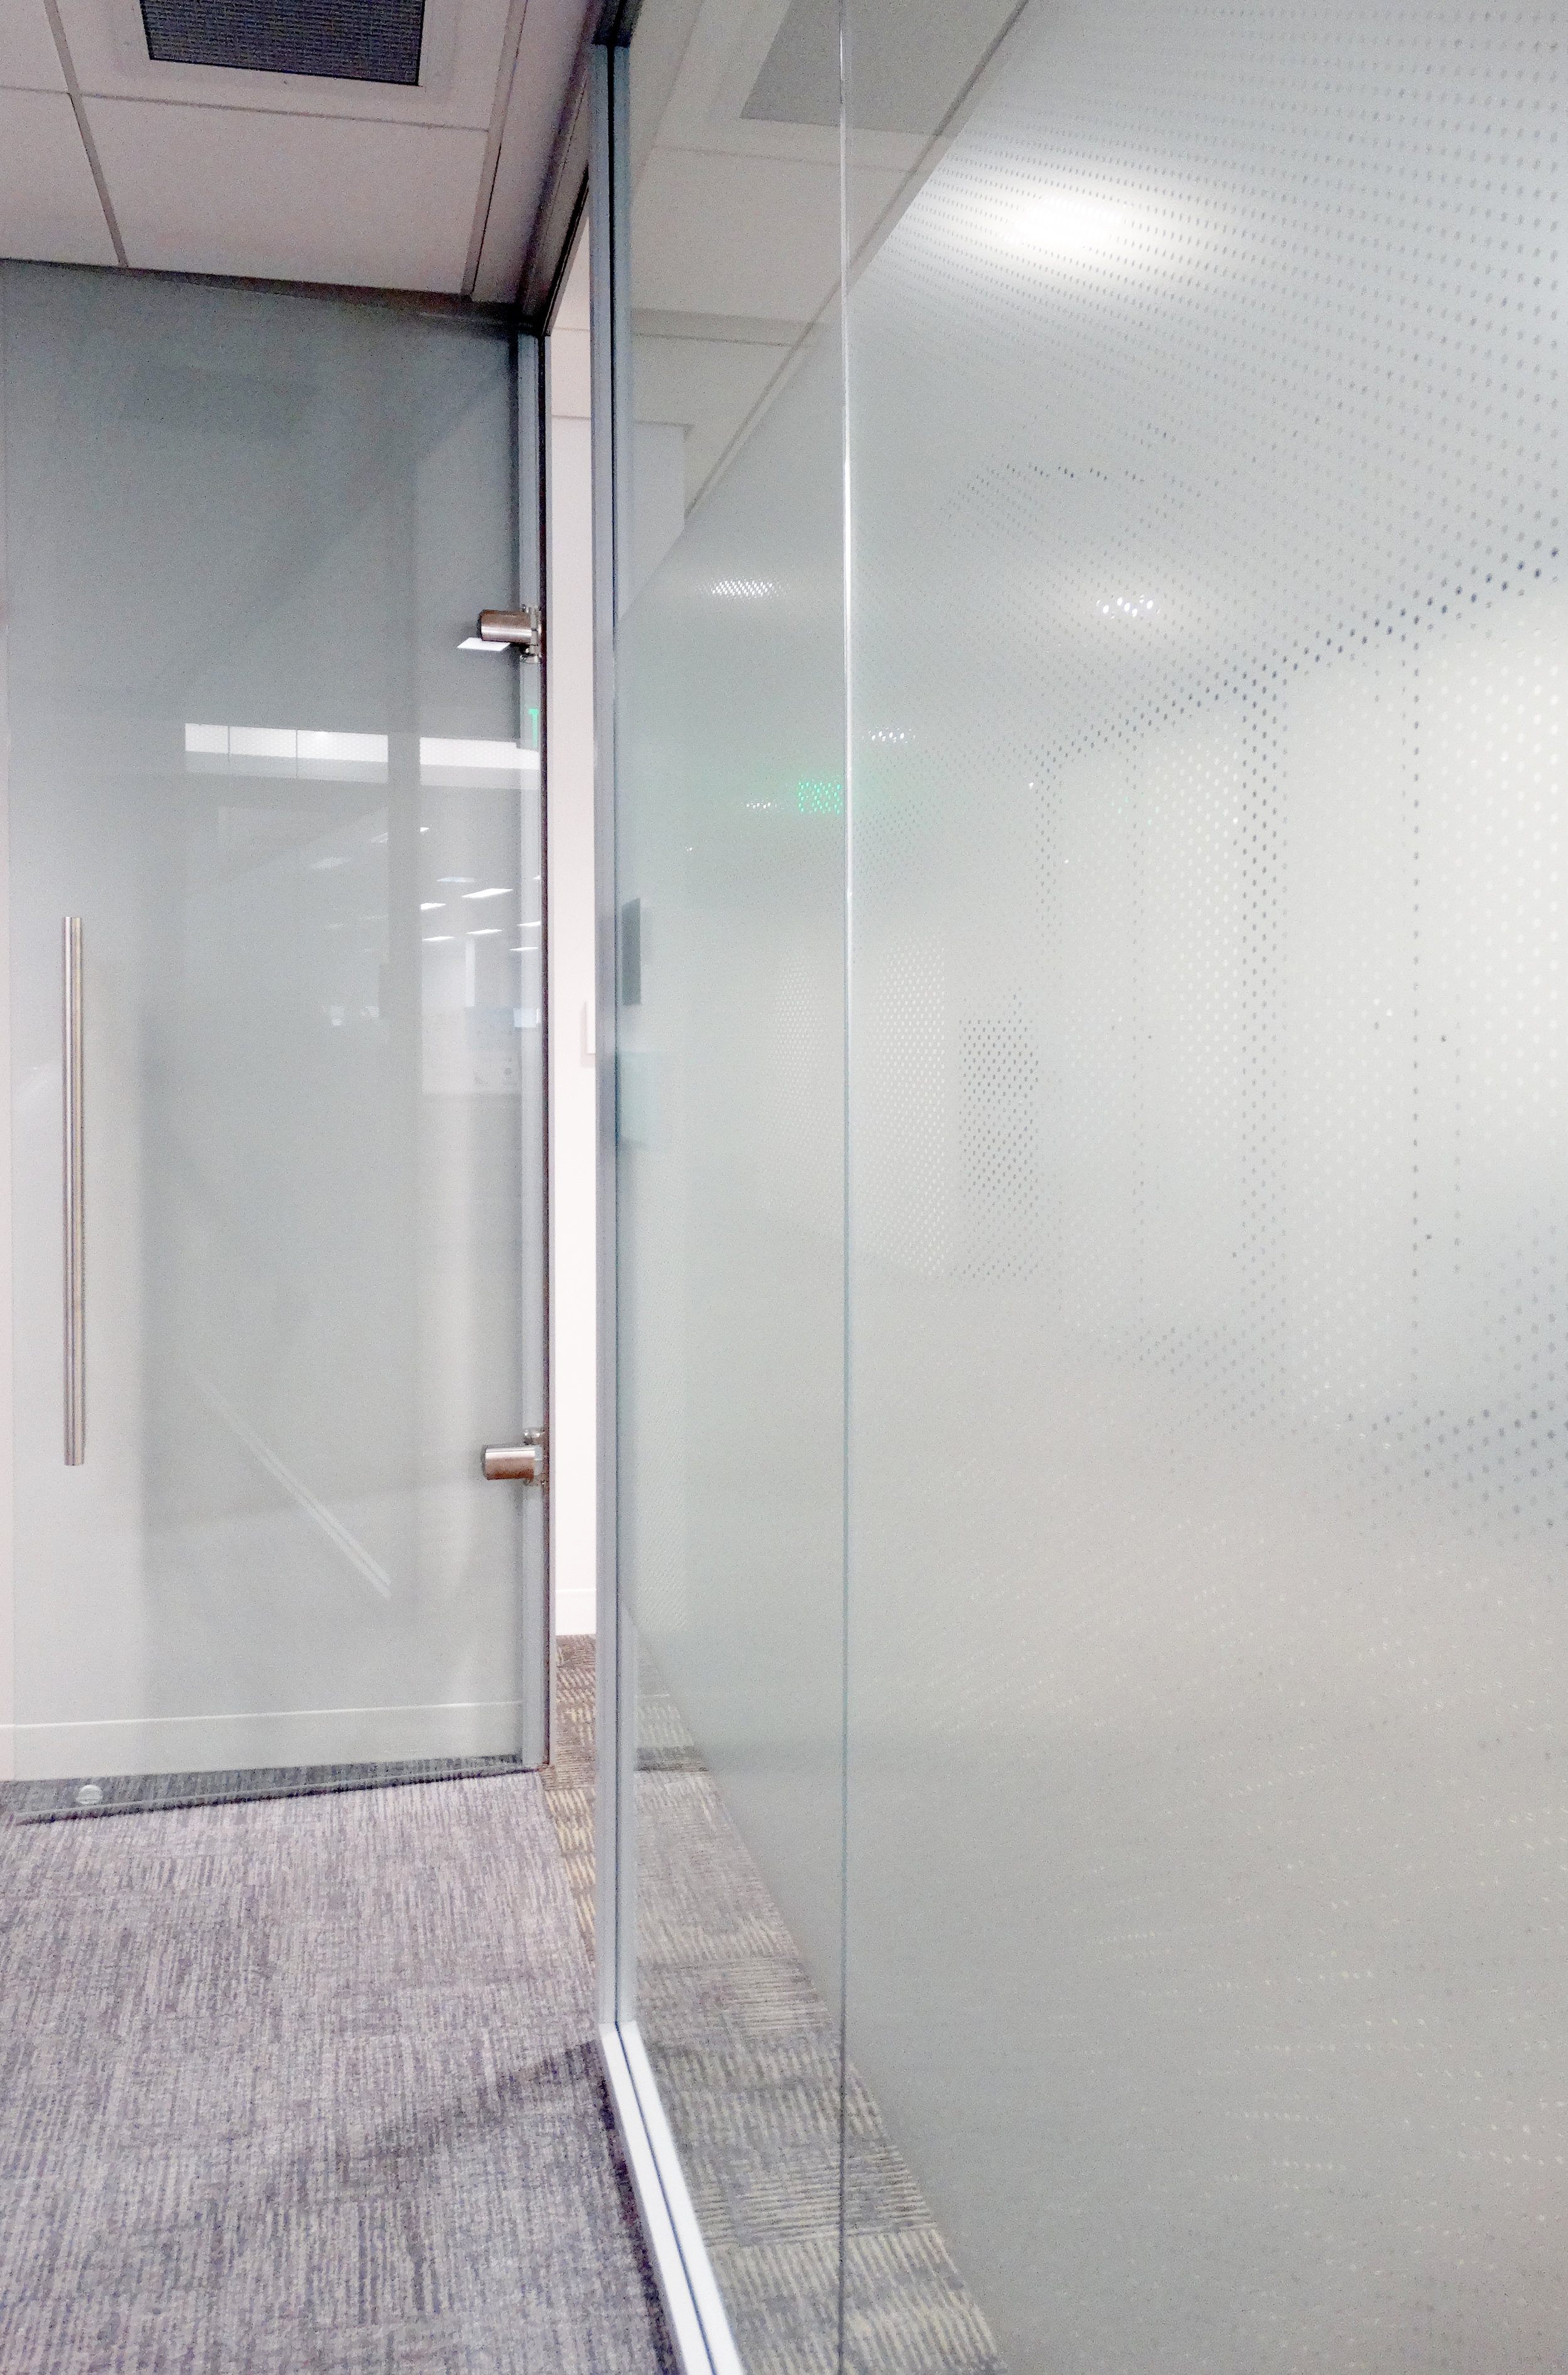 Litespace Demountable Frameless Glass Swing Door - Spaceworks AI.jpg